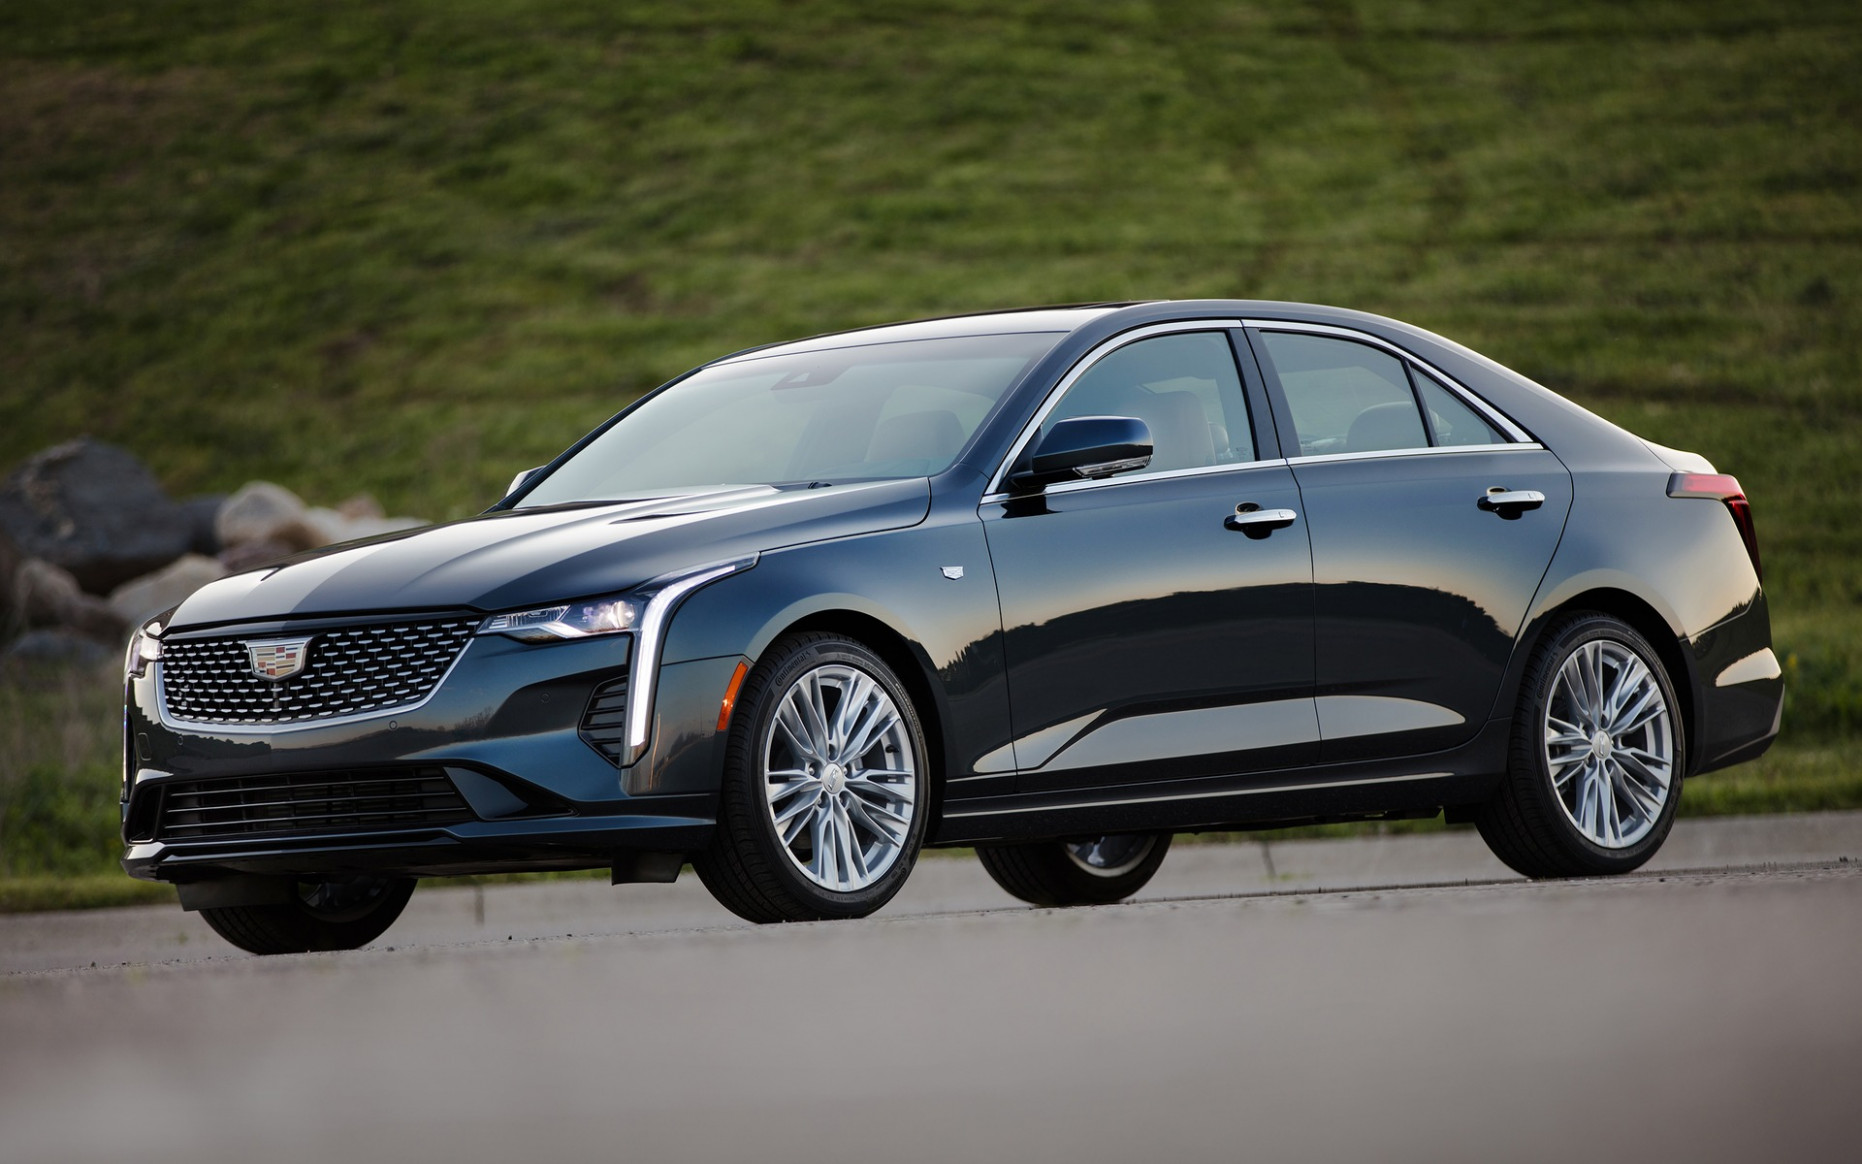 12 Cadillac CT12: Full Lineup Details Revealed - The Car Guide - 2020 cadillac lineup